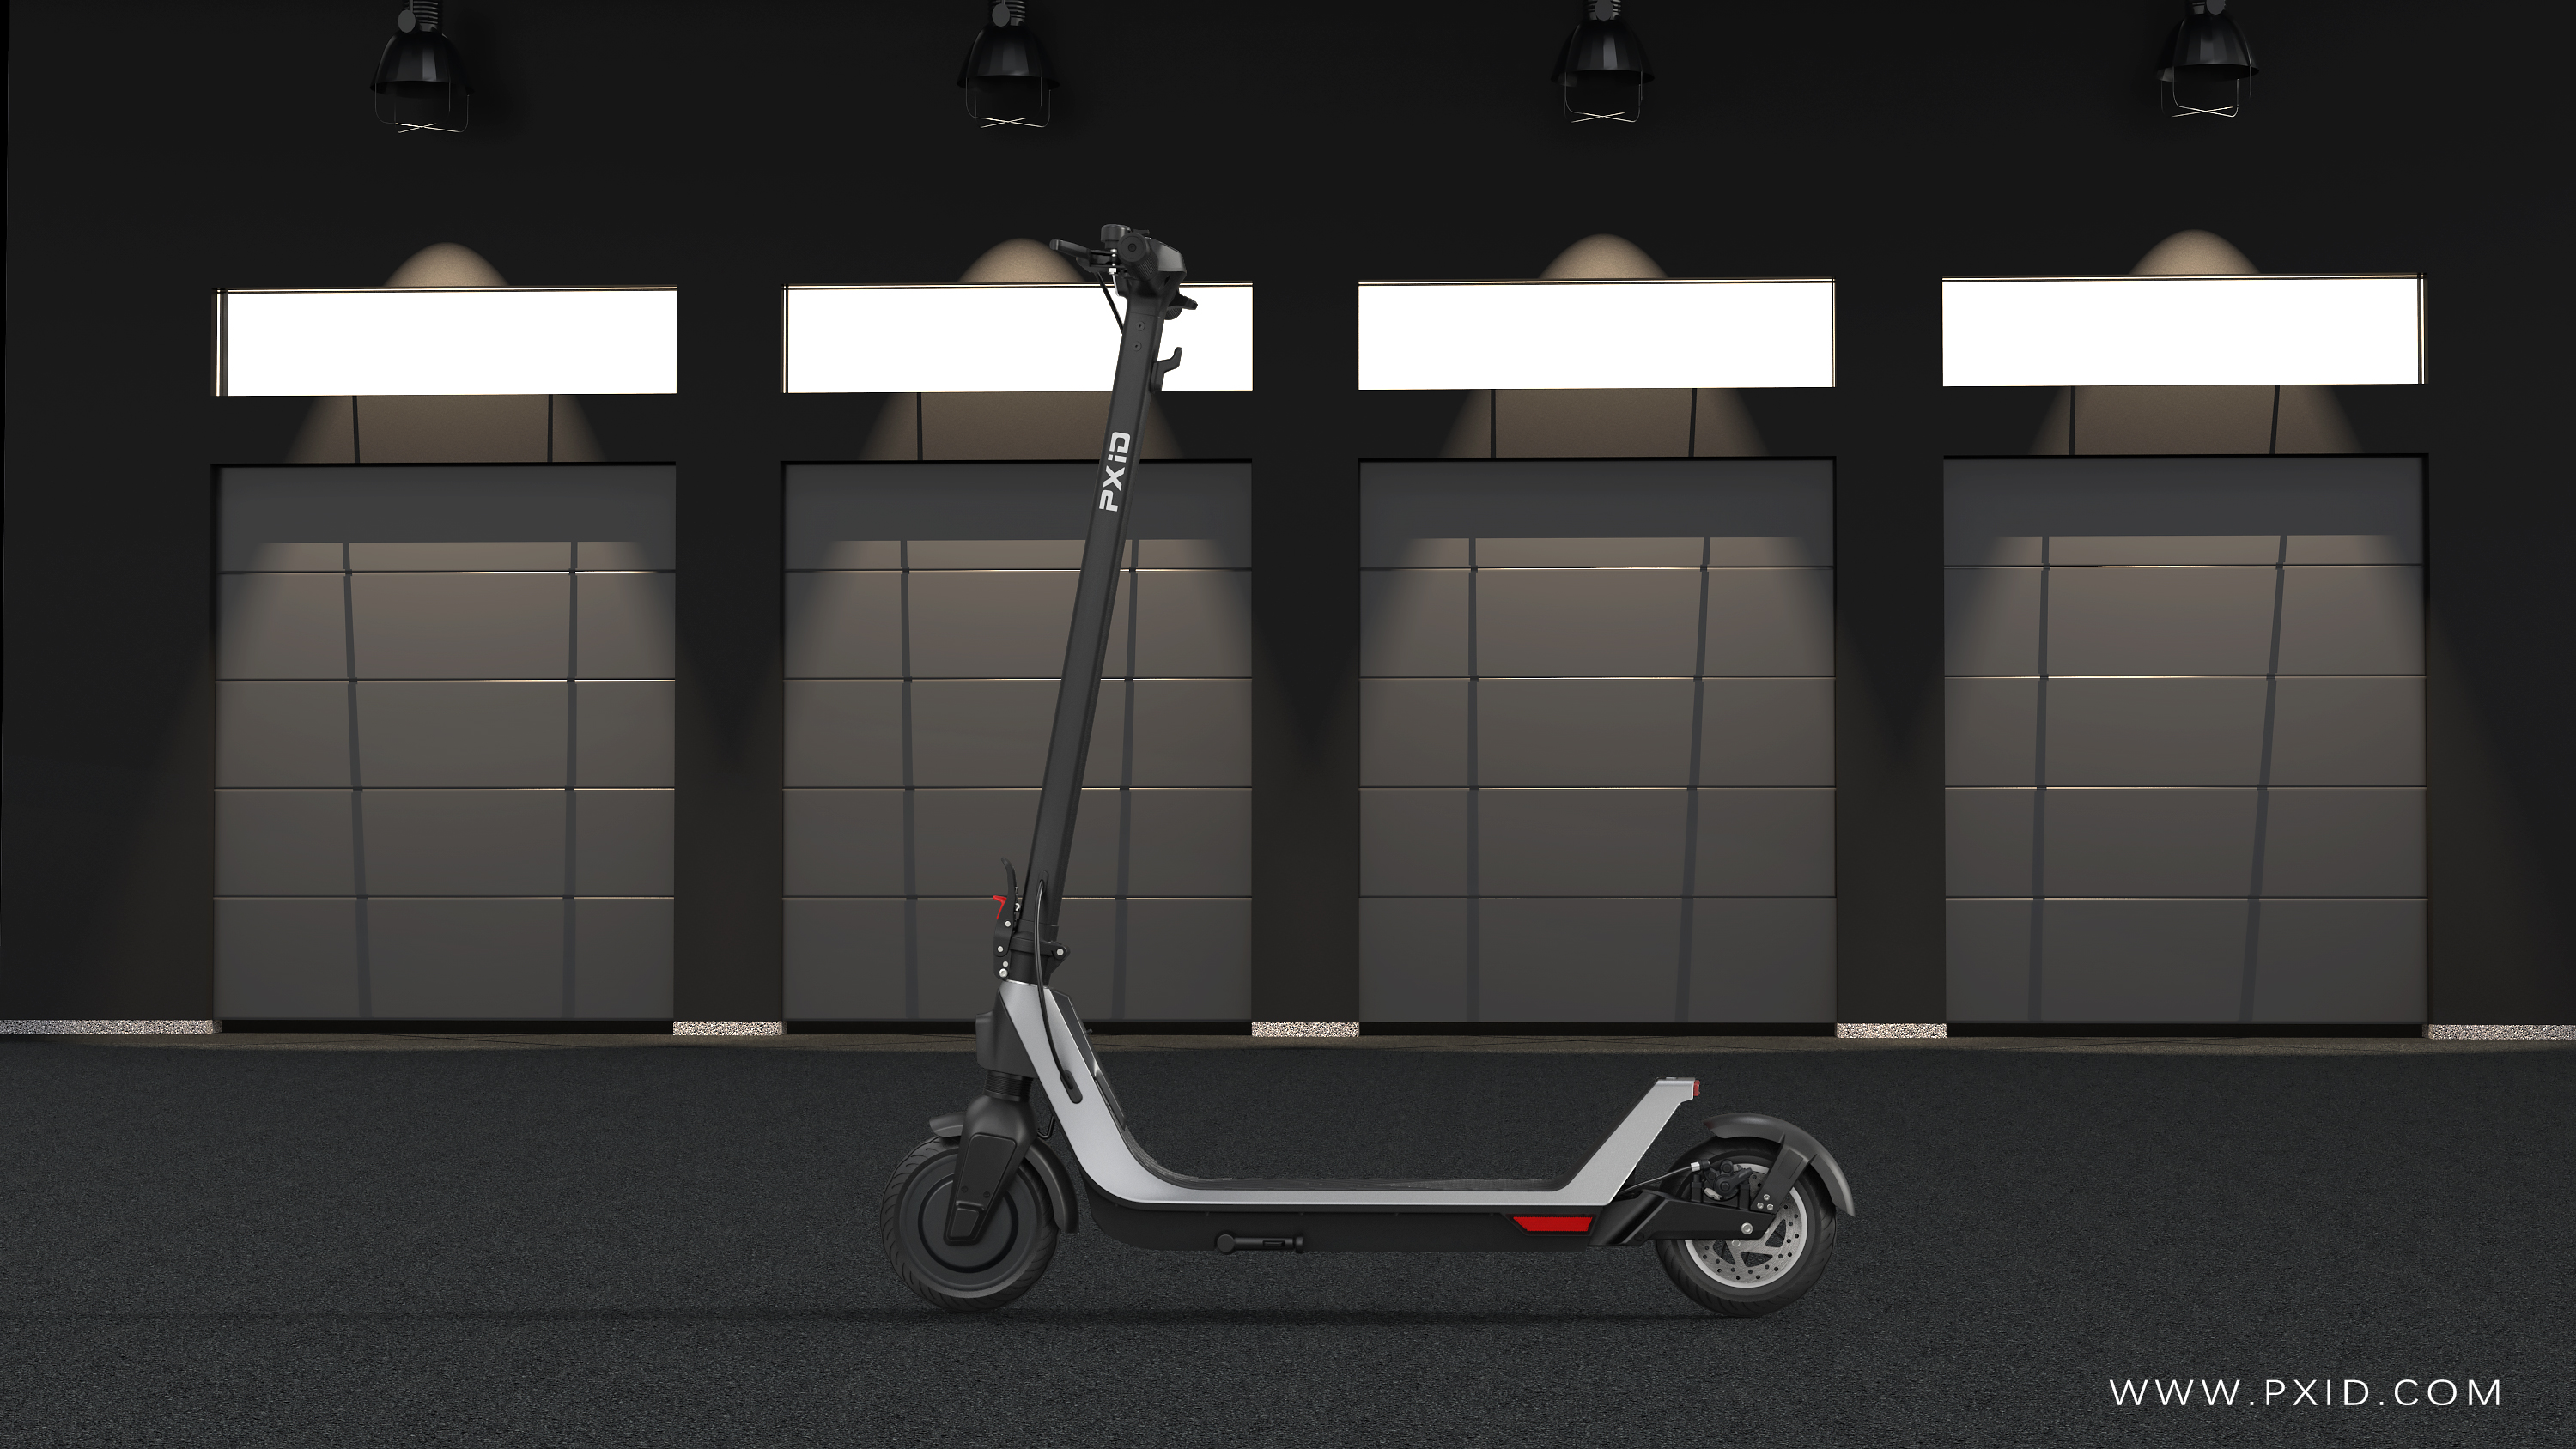 FM 2021 Electric Scooter Design